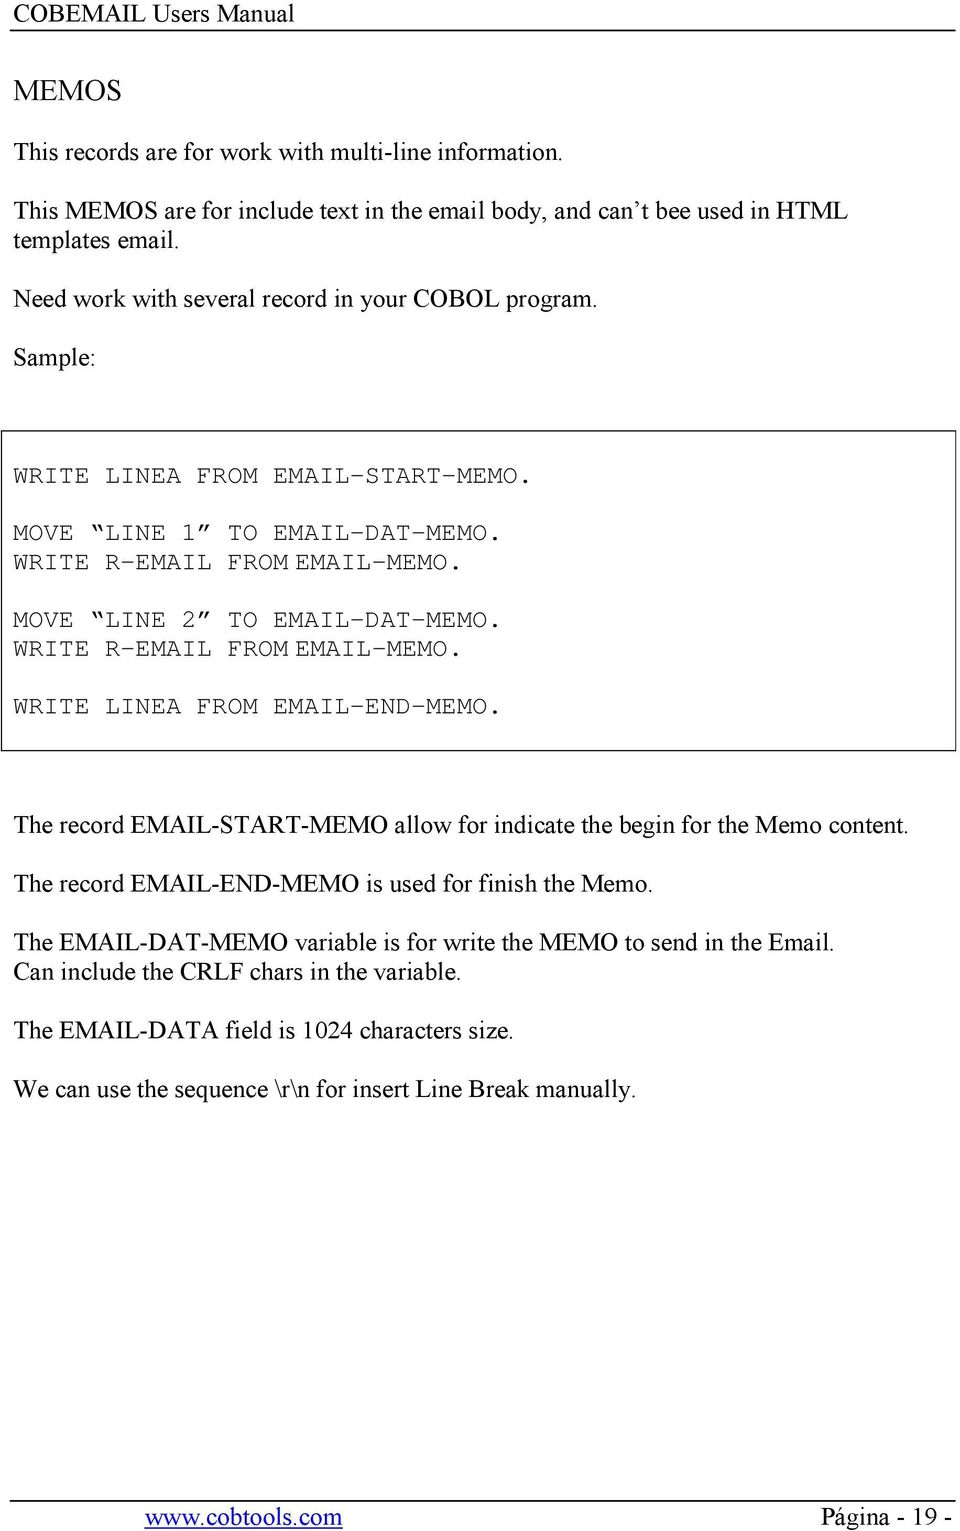 WRITE R-EMAIL FROM EMAIL-MEMO. WRITE LINEA FROM EMAIL-END-MEMO. The record EMAIL-START-MEMO allow for indicate the begin for the Memo content. The record EMAIL-END-MEMO is used for finish the Memo.